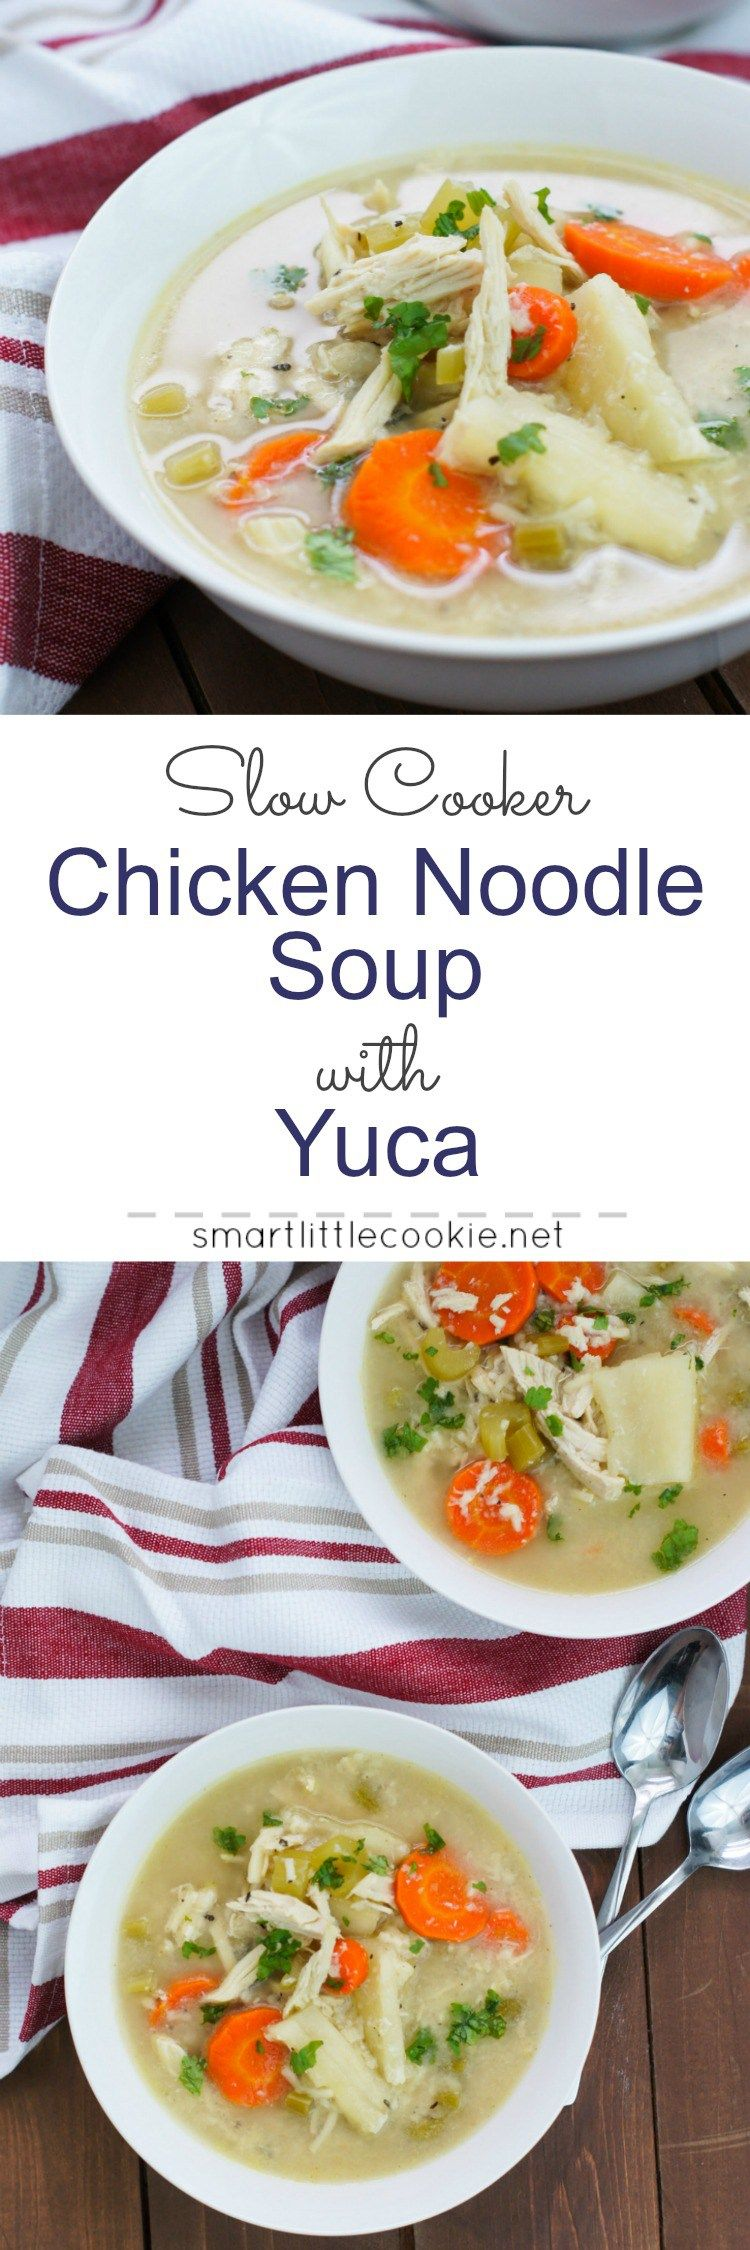 slow cooker chicken noodle soup with yuca  recipe  slow